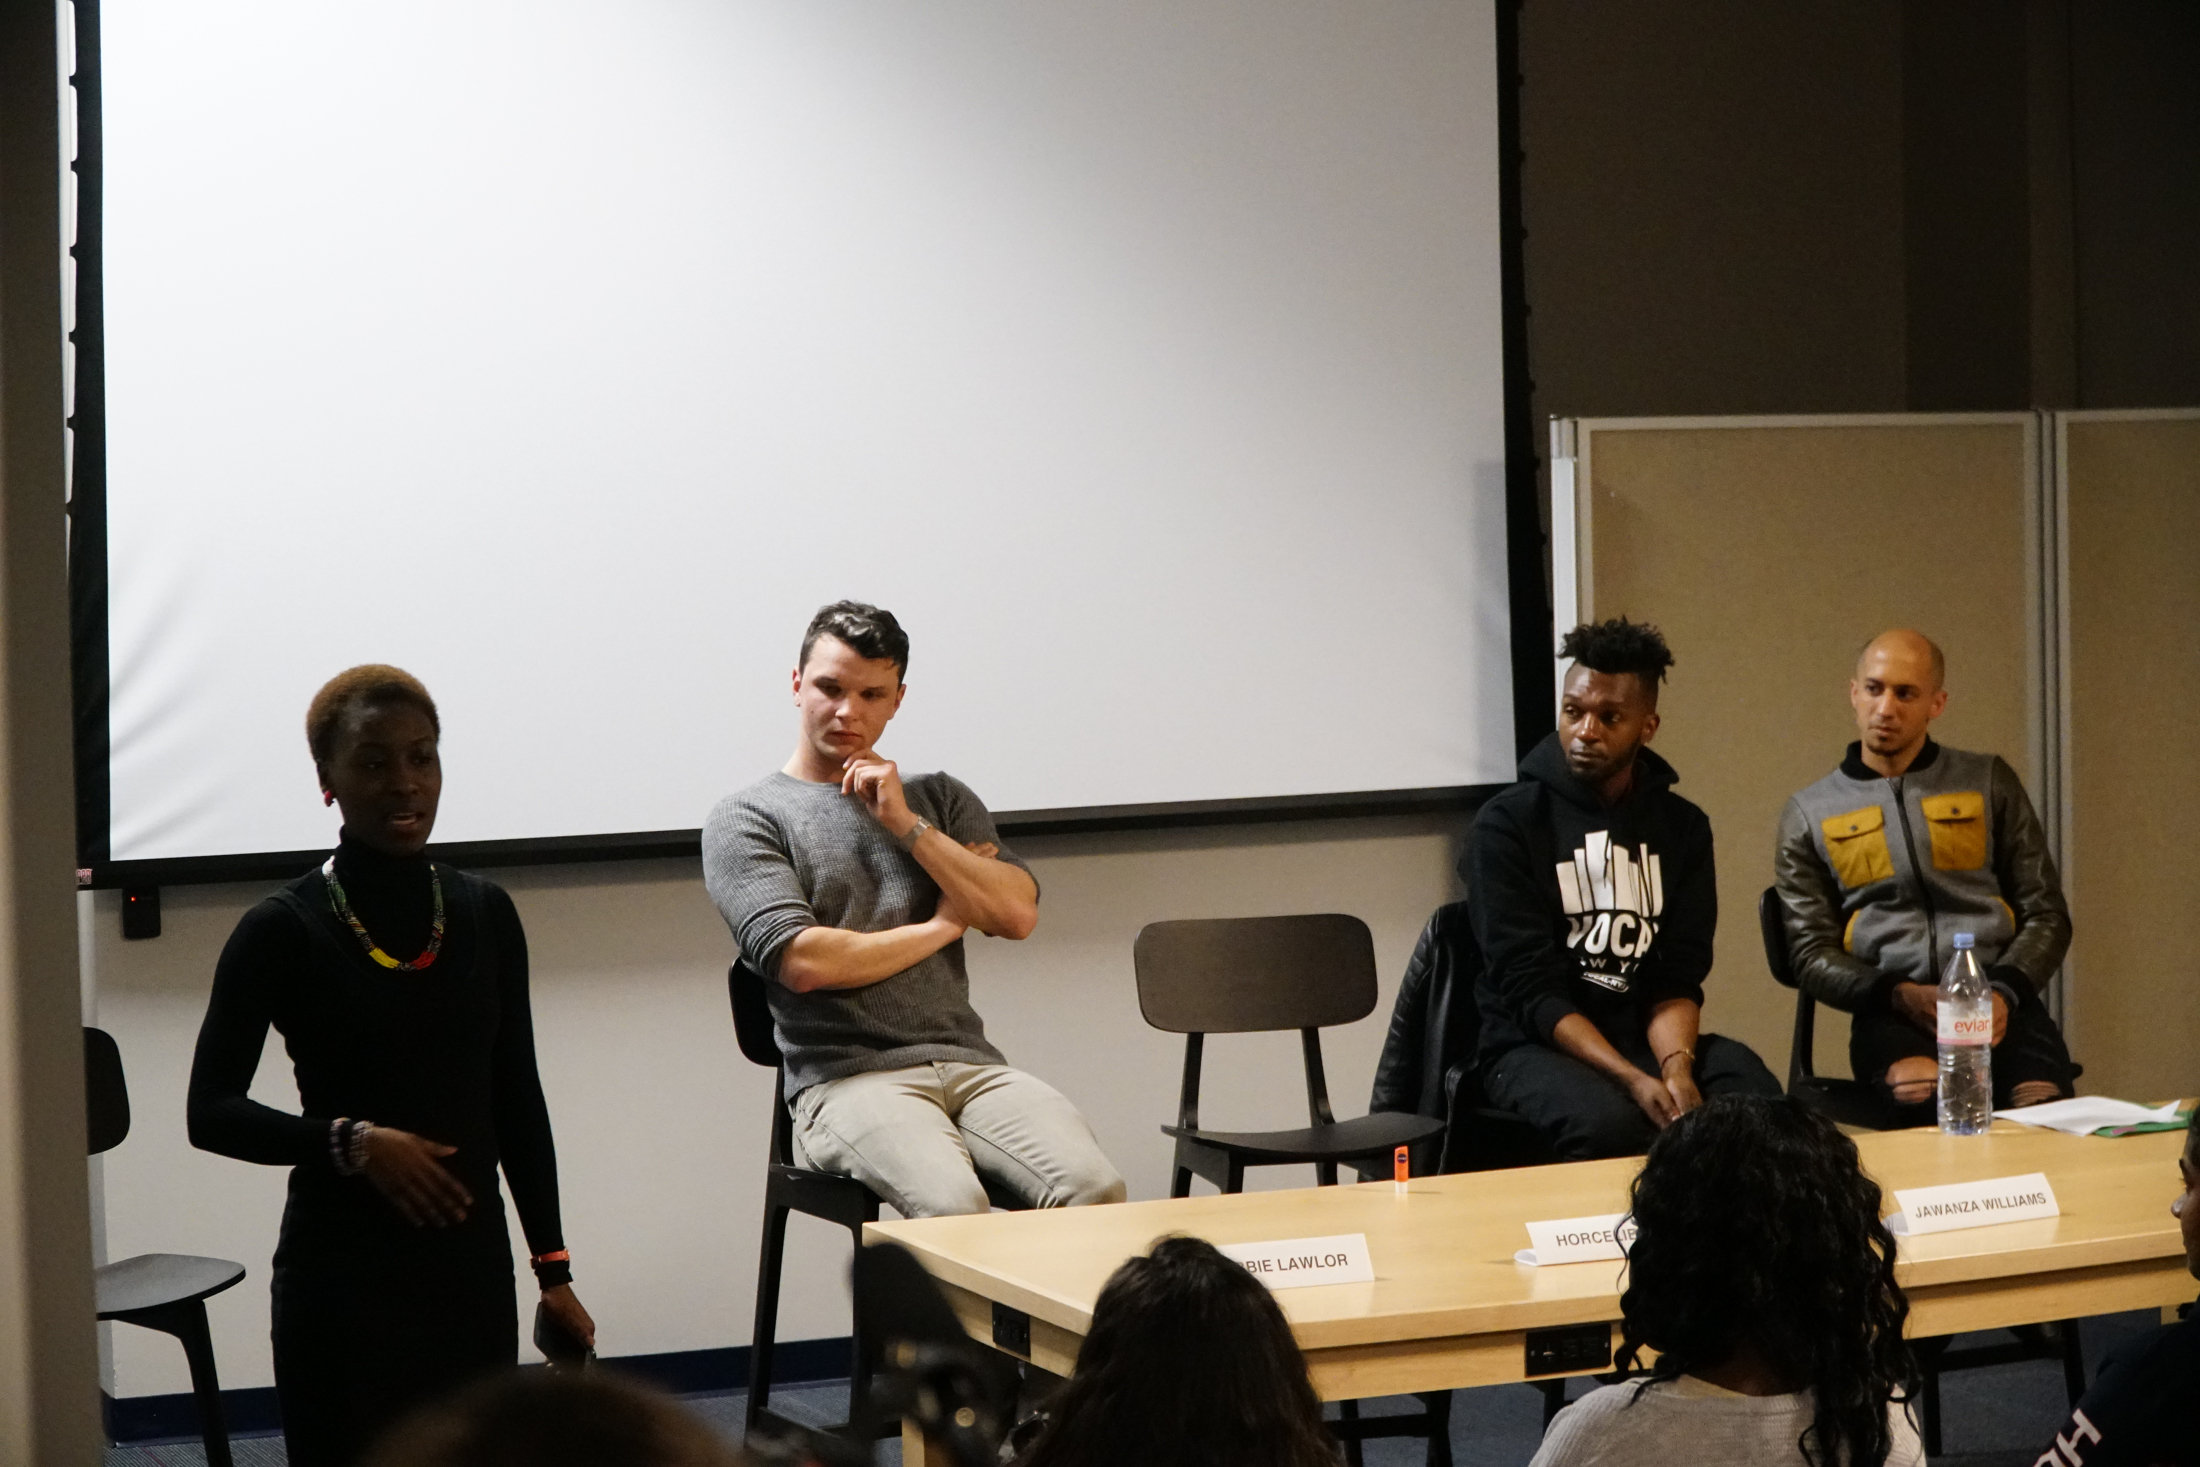 """HIV positive speakers from the UK give a lecture titled """"Youth Ends AIDS"""" in the UConn Bookstore on Tuesday, Feb. 21, 2018. The groups aim is to have zero new HIV infections. (Eric Wang/The Daily Campus)"""